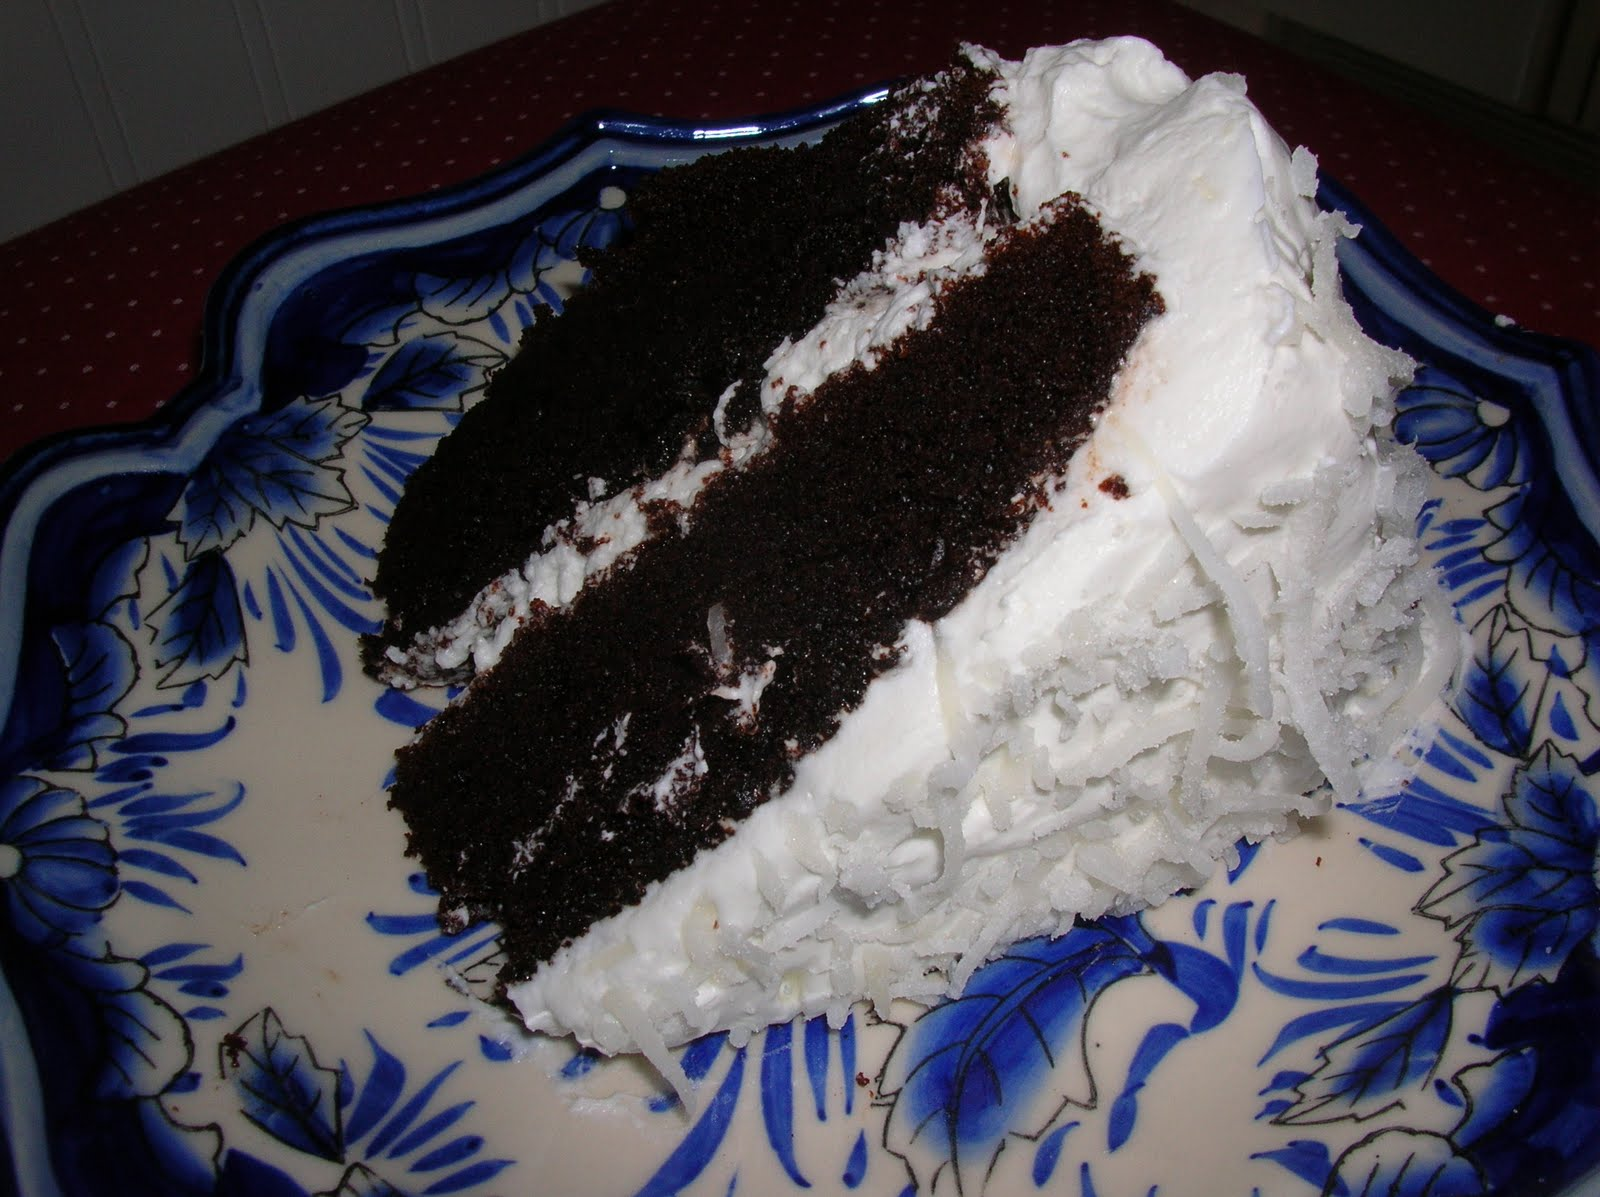 Year of Cakes: Cake Recipe #2 - Chocolate Cake with Coconut Cream